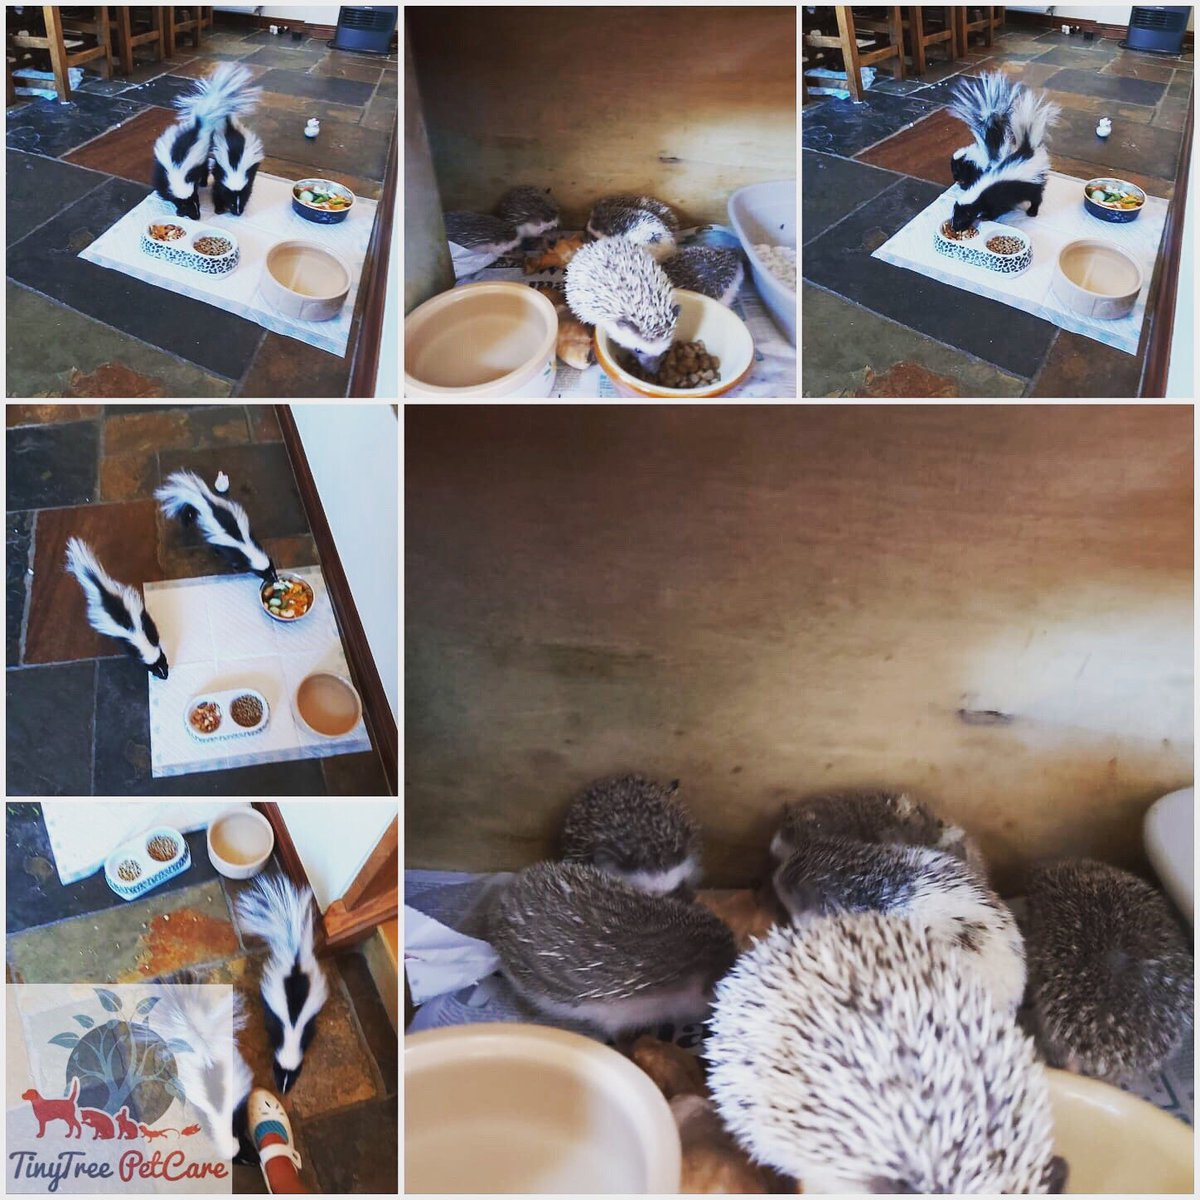 Home visits for skunks and hedgehogs today! #skunks #hedgehogs #petsoftwitter #homevisit #petcare #petsitting